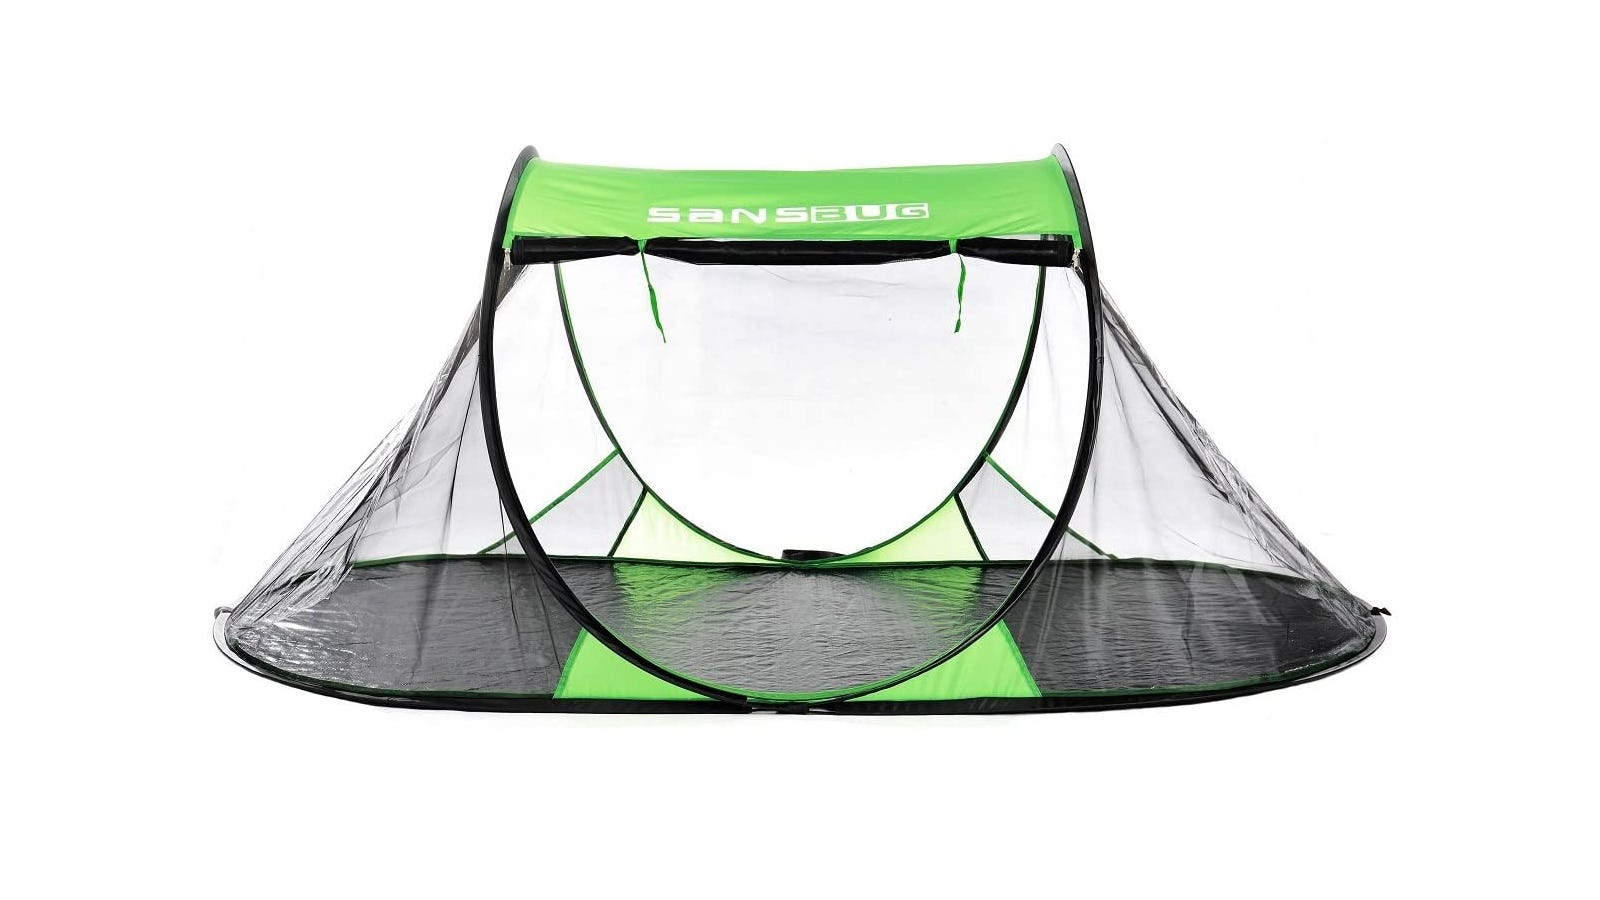 A green and black mosquito net tent that fits one person.